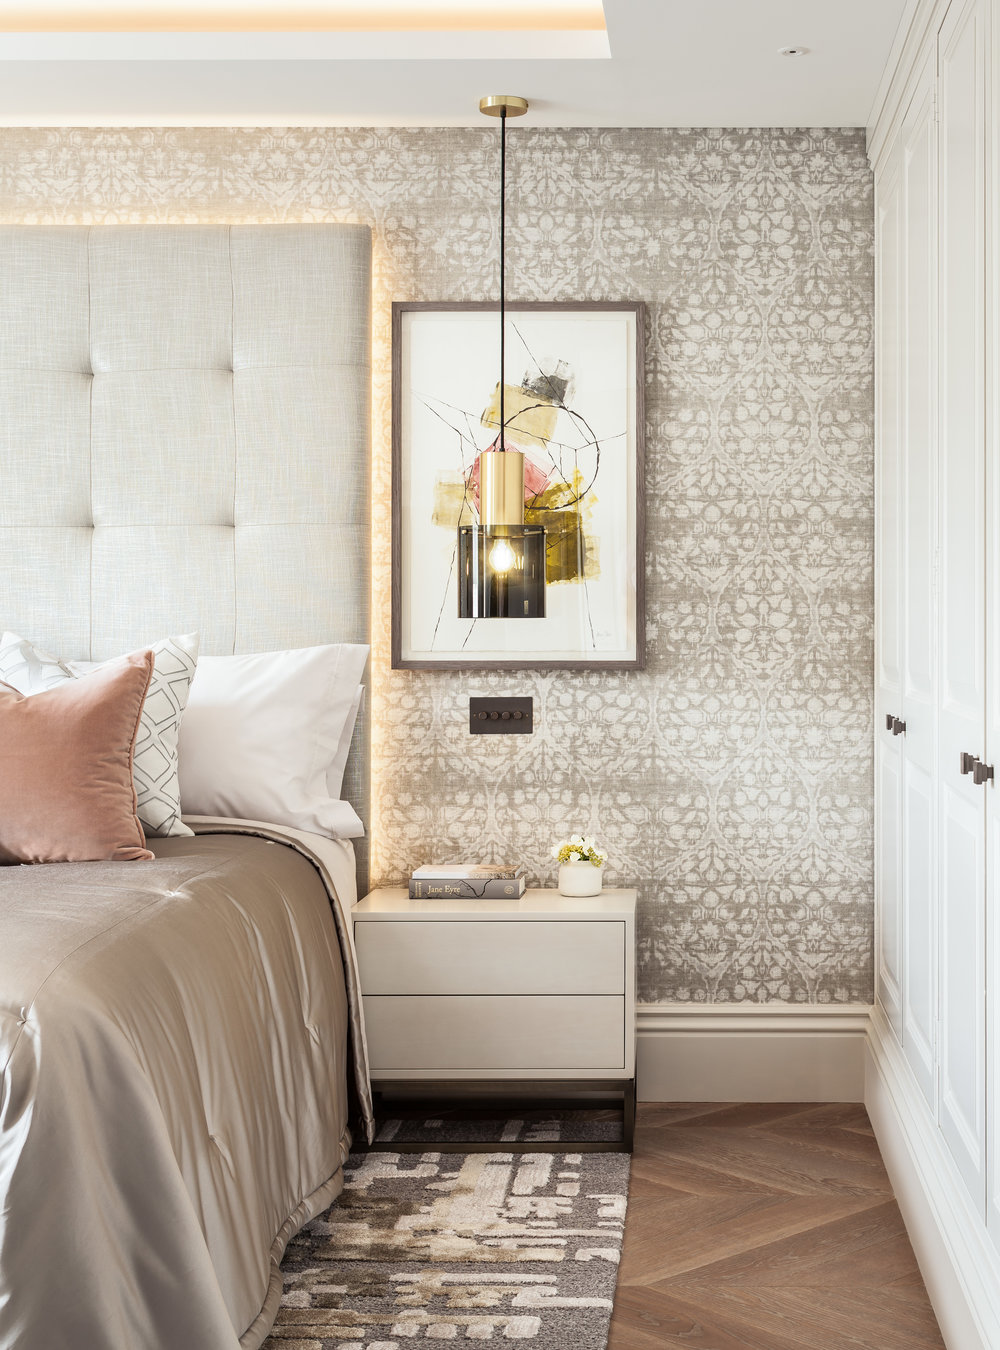 Jo Hamilton Interiors - Kensington bedroom sidetable